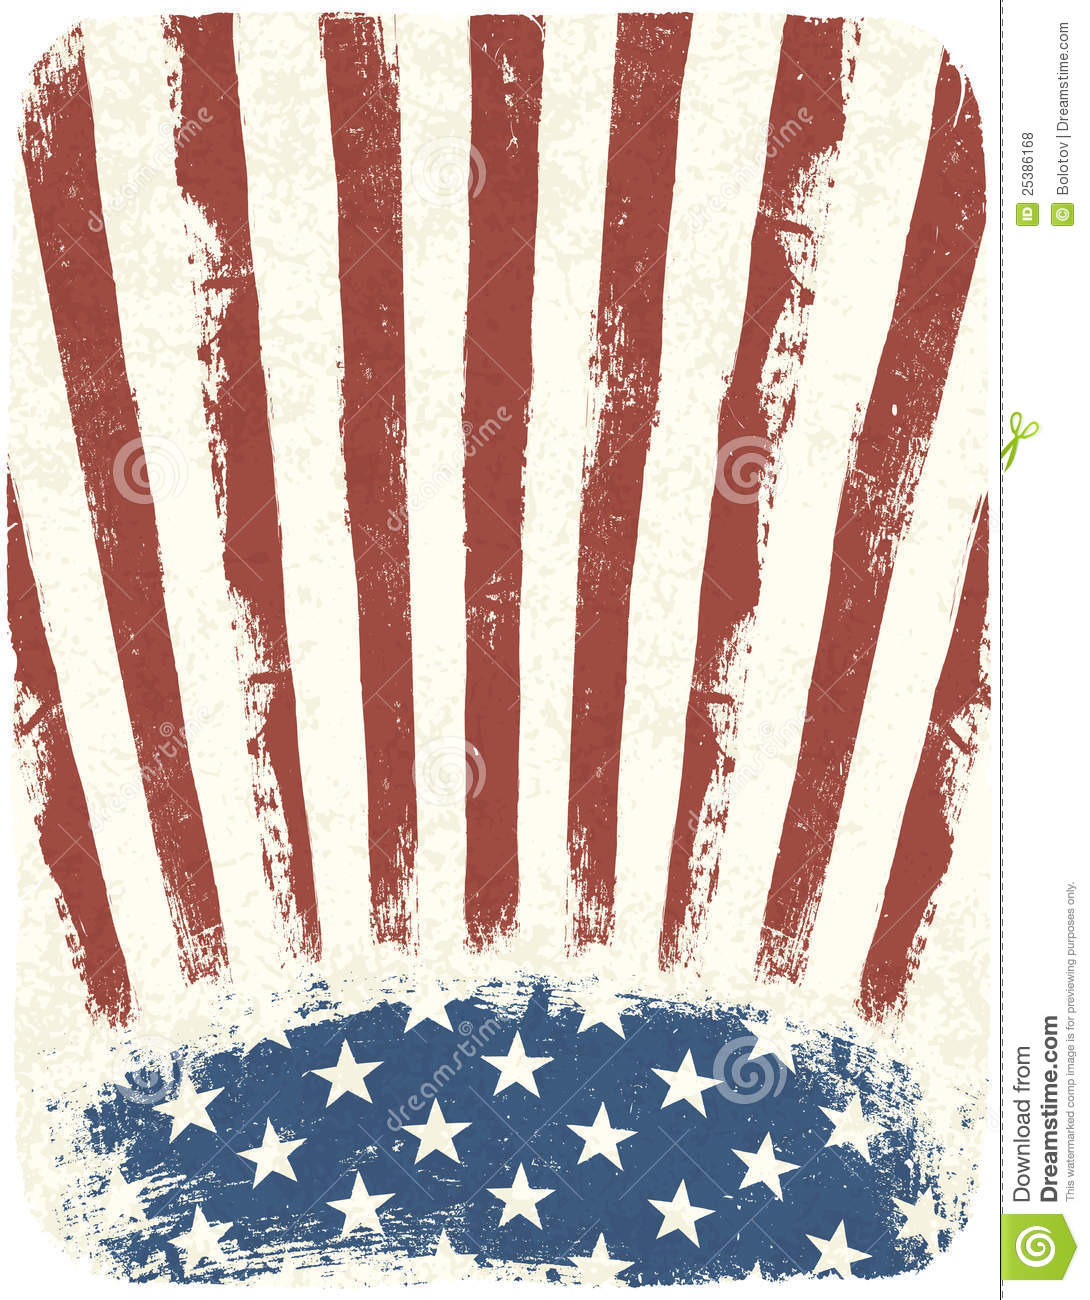 American Patriotic Poster Royalty Free Stock Photos ... American